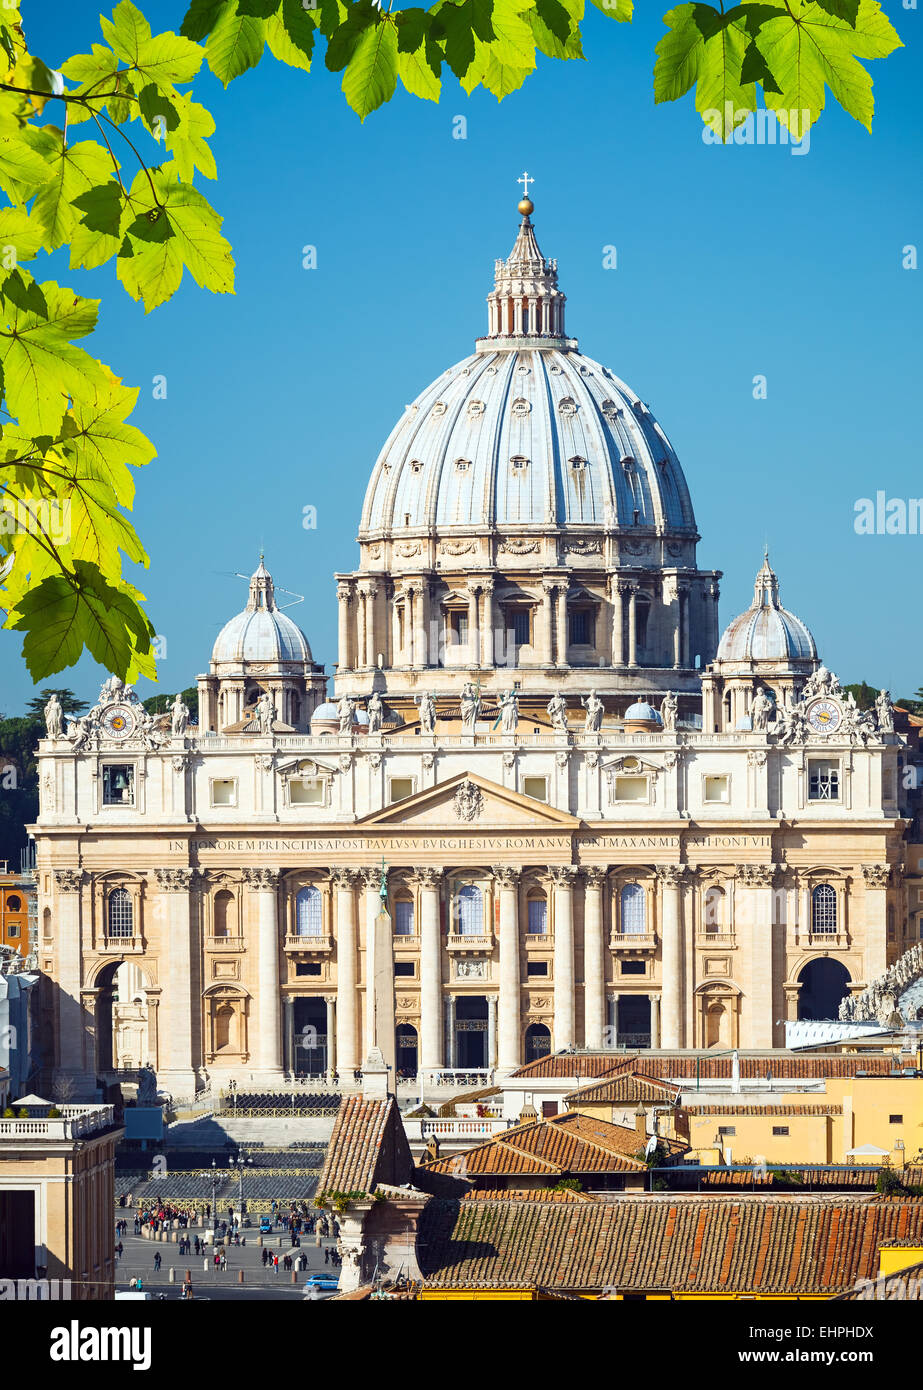 St. Peter's cathedral, Rome - Stock Image